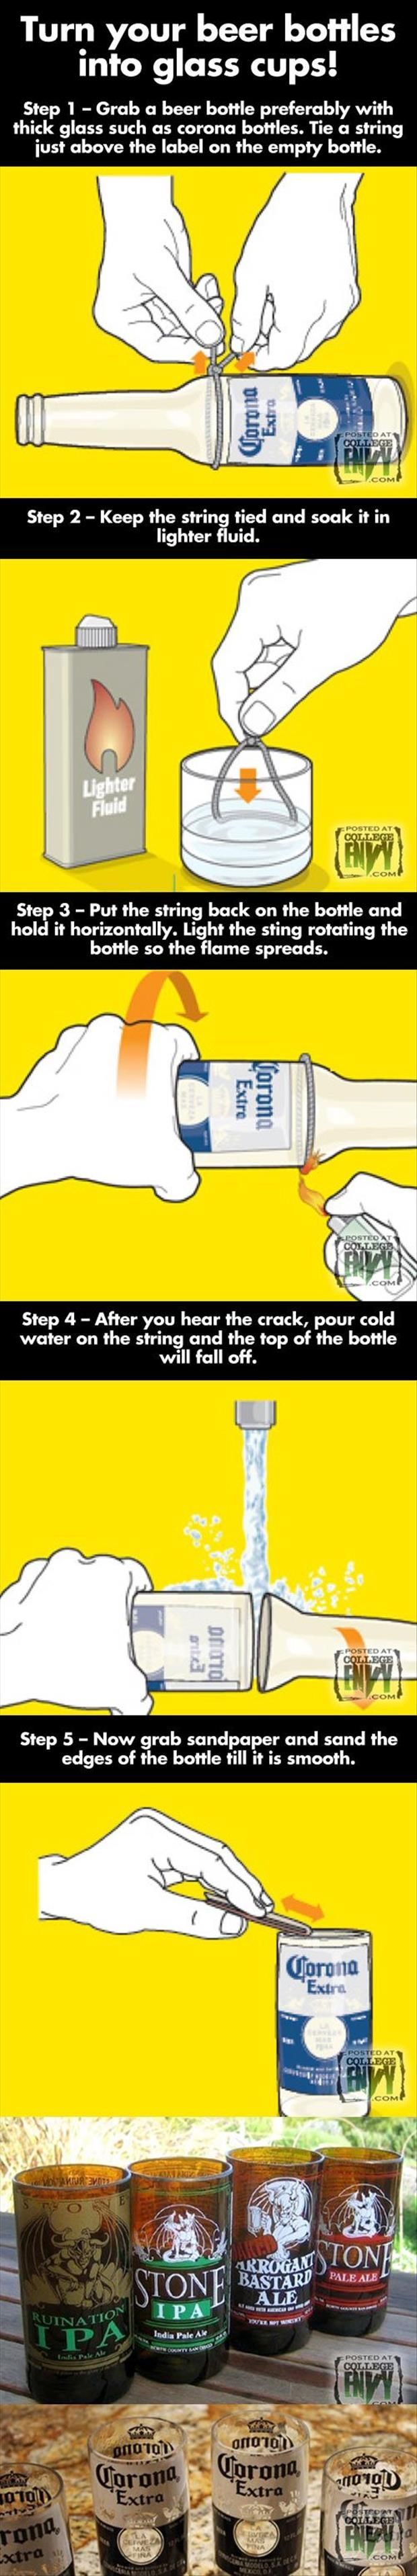 This is really cool to know about glass bottles maybe one day I'll try it